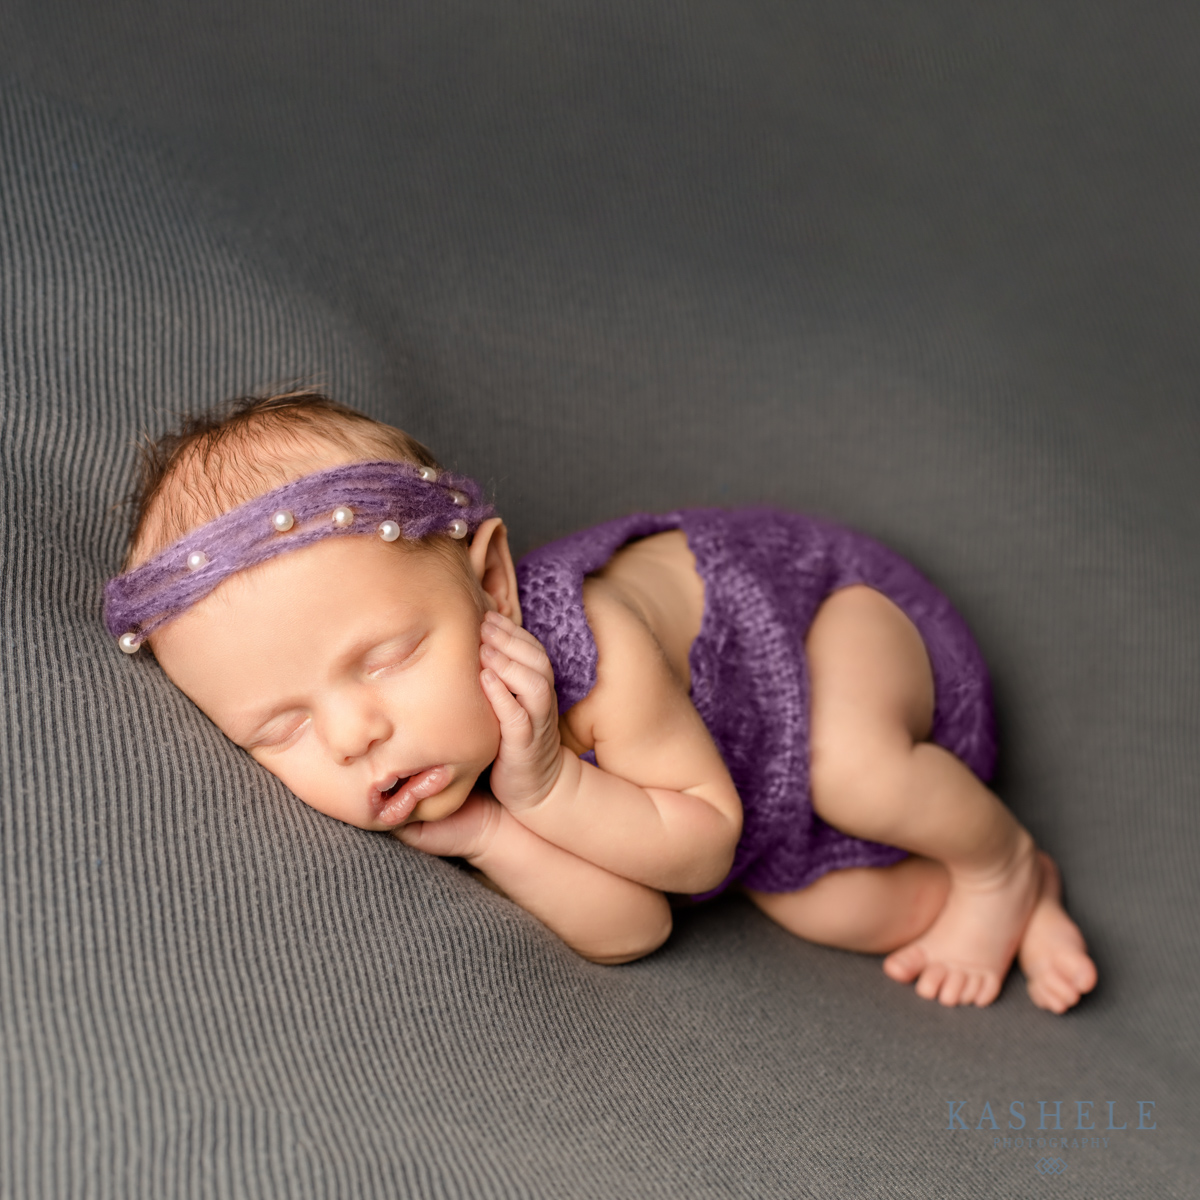 Baby with her hands on her cheeks for for Questions to ask your newborn photographer post